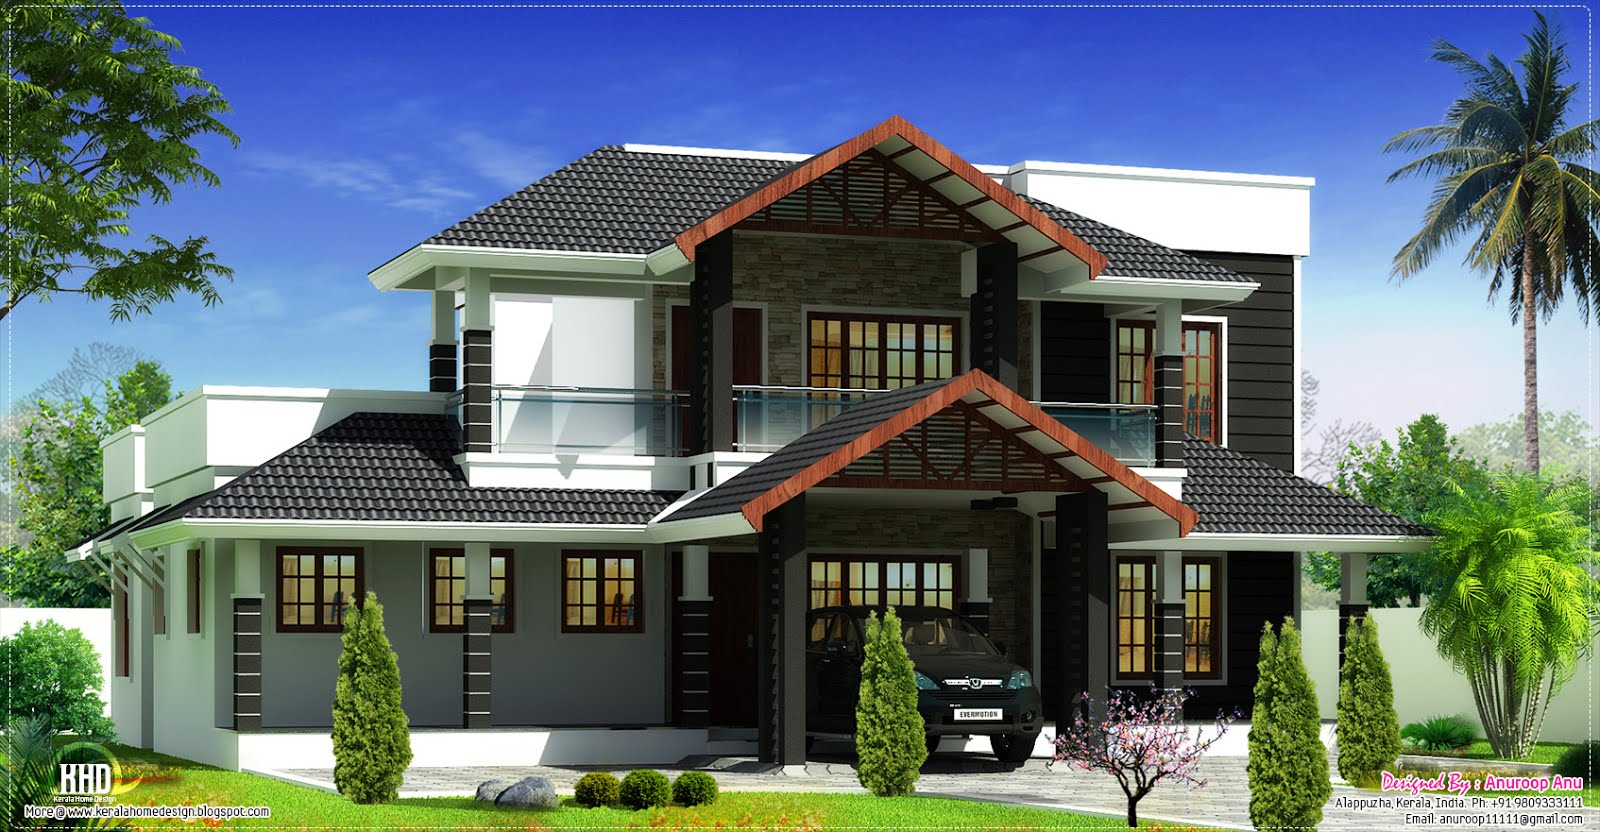 Beautiful sloping roof villa elevation design kerala for Sloped roof house plans in india